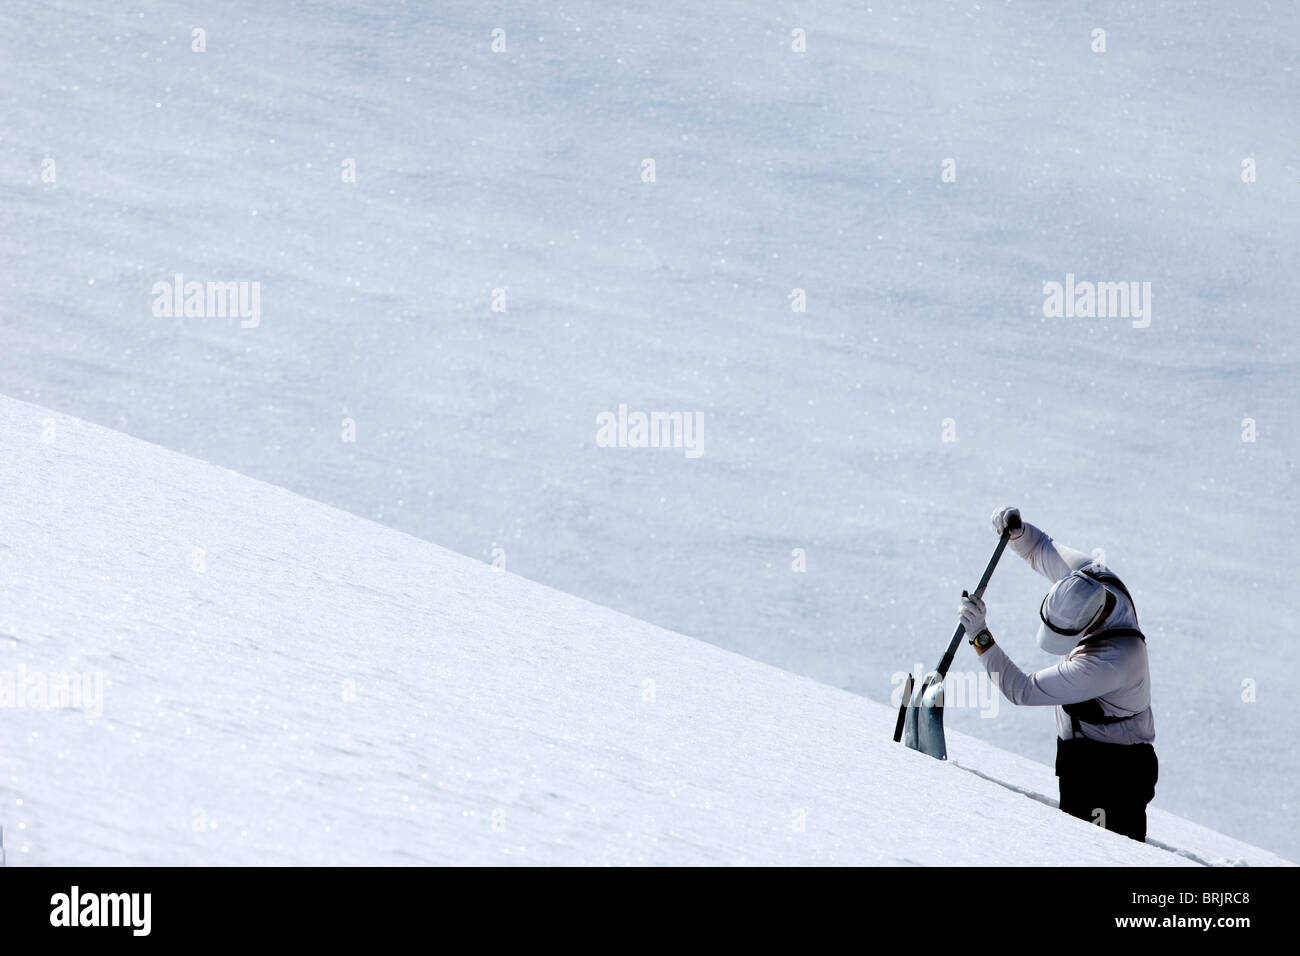 One man digging a pit in the snow. Stock Photo